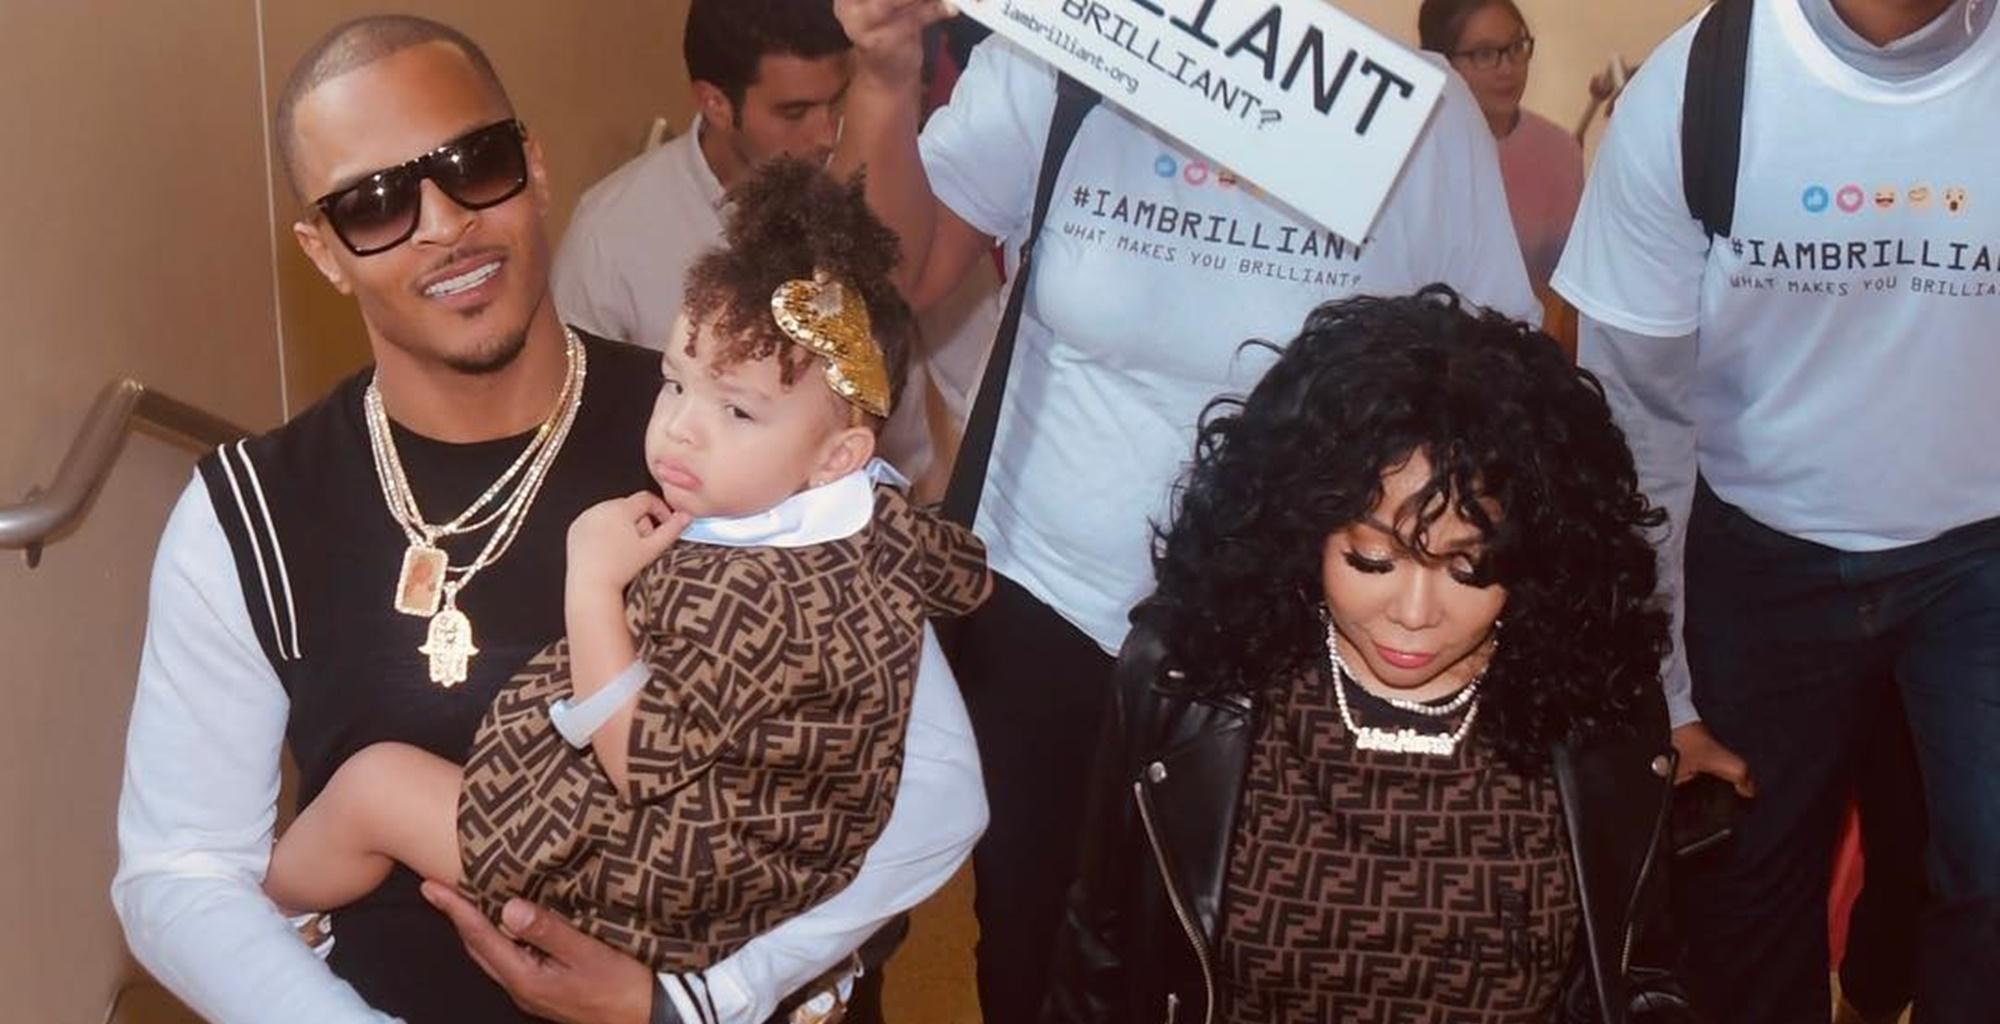 T.I. And Tiny Harris' Daughter Heiress Could Be The Next YouTube Star Like JoJo Siwa And This Video Proves It